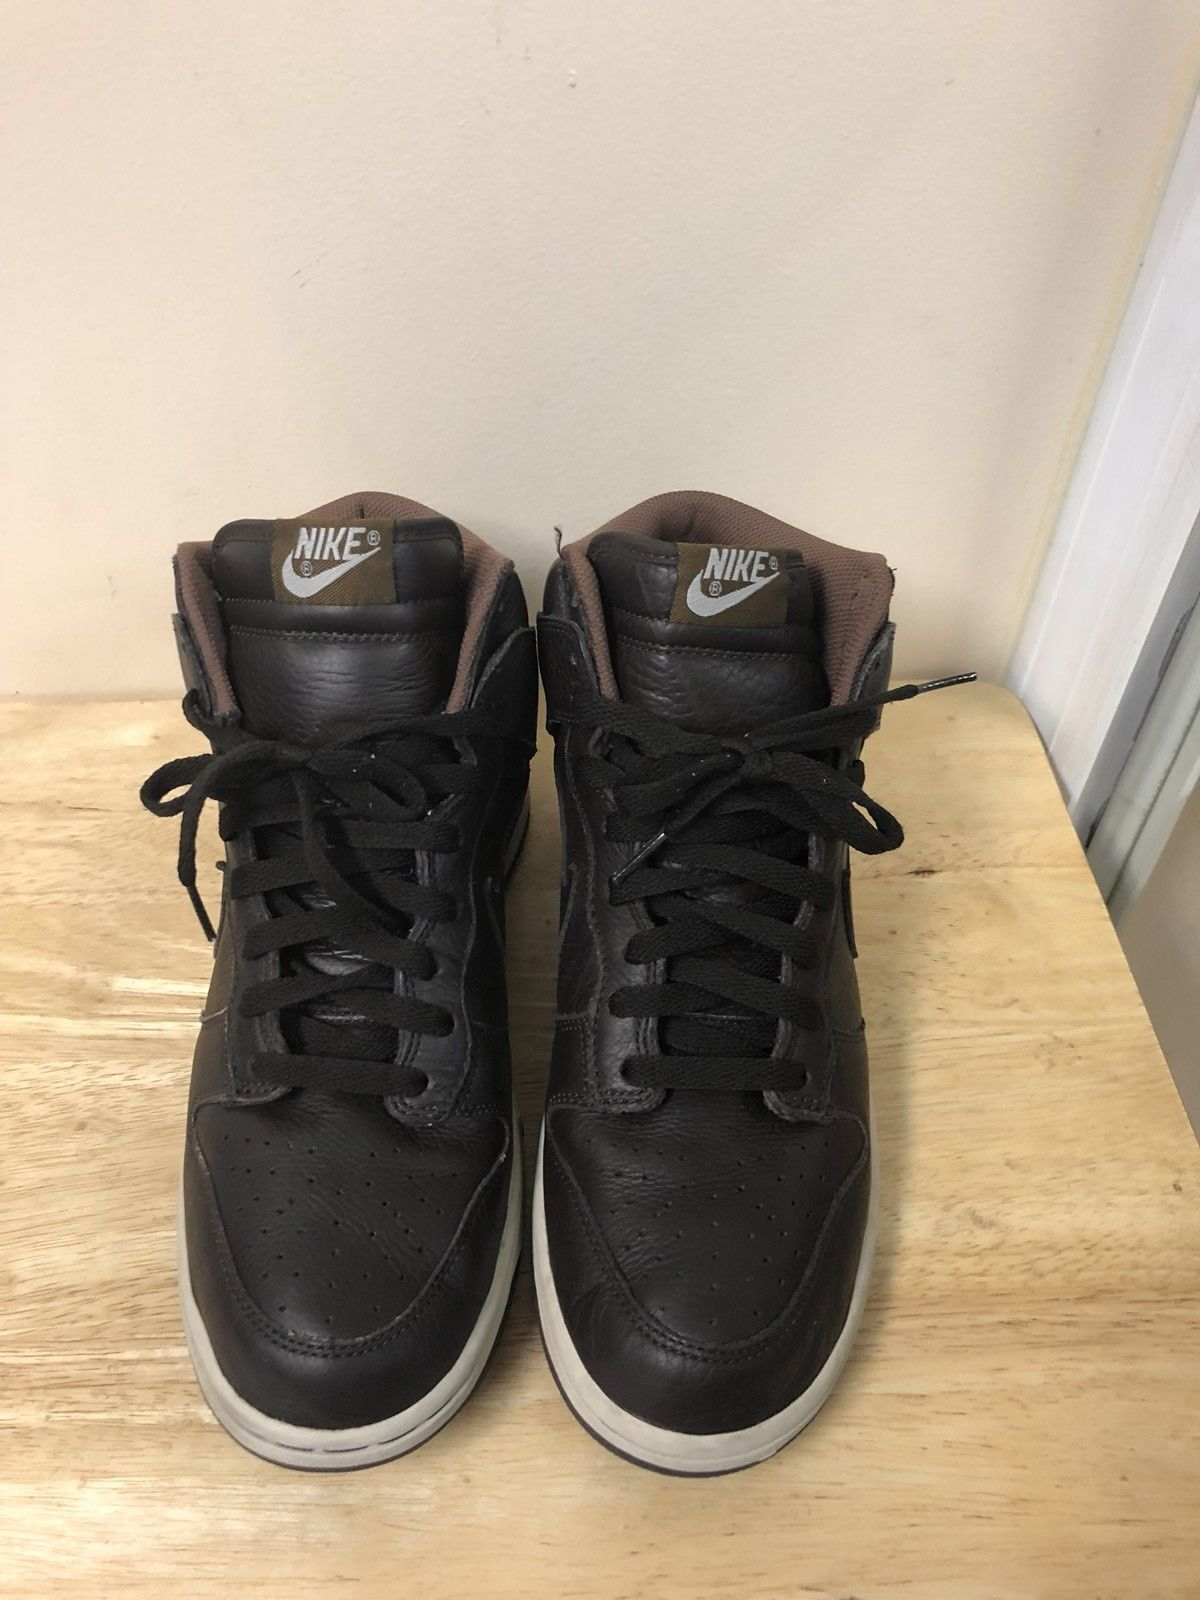 Nike Dunk High Leather Shoes Brown Men Size 10.5 Shoes Leather Sneakers 312786-222 13dc50